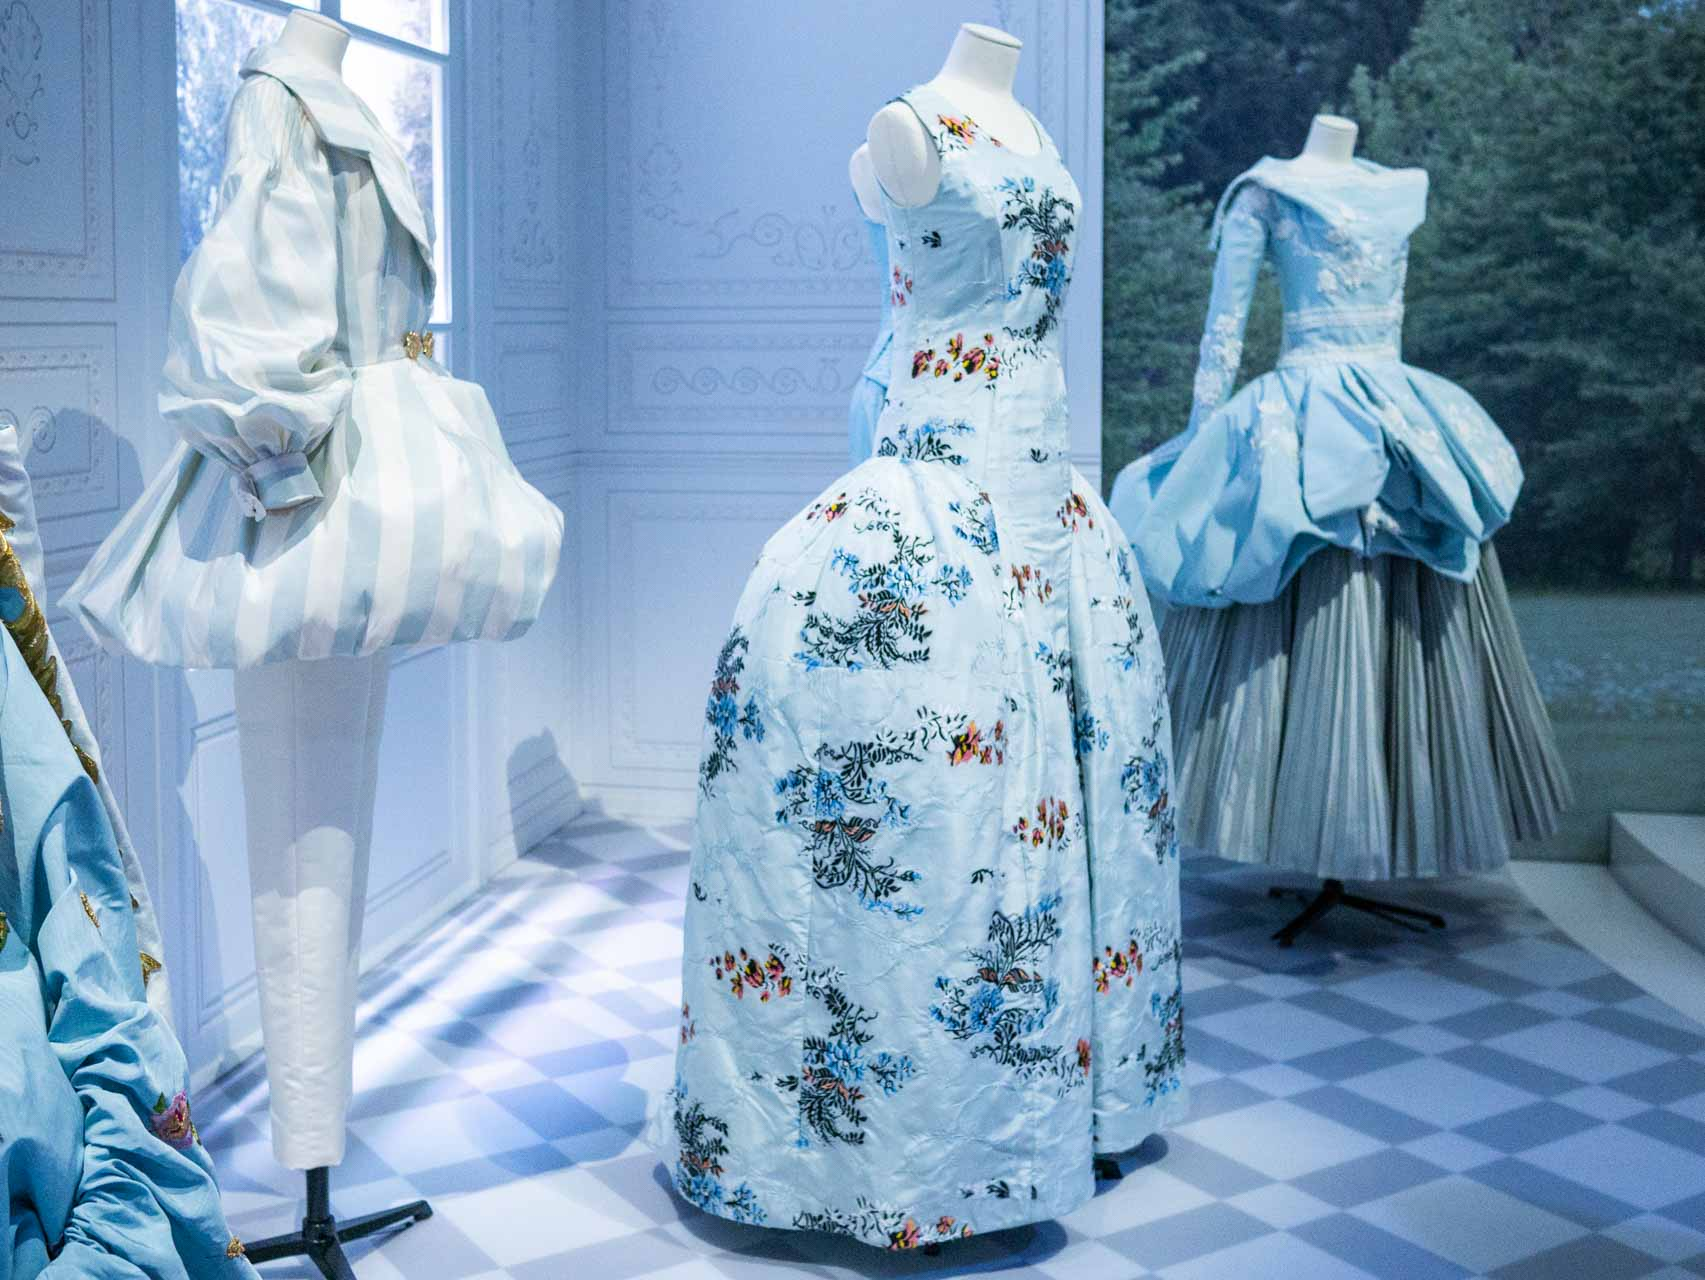 Pale blue dress with floral sprays with 18th-century inspired silhouette. Christian Dior by Raf Simons, Haute Couture, AW14. Taken at the V&A exhibition © The Cutting Class, 2019.